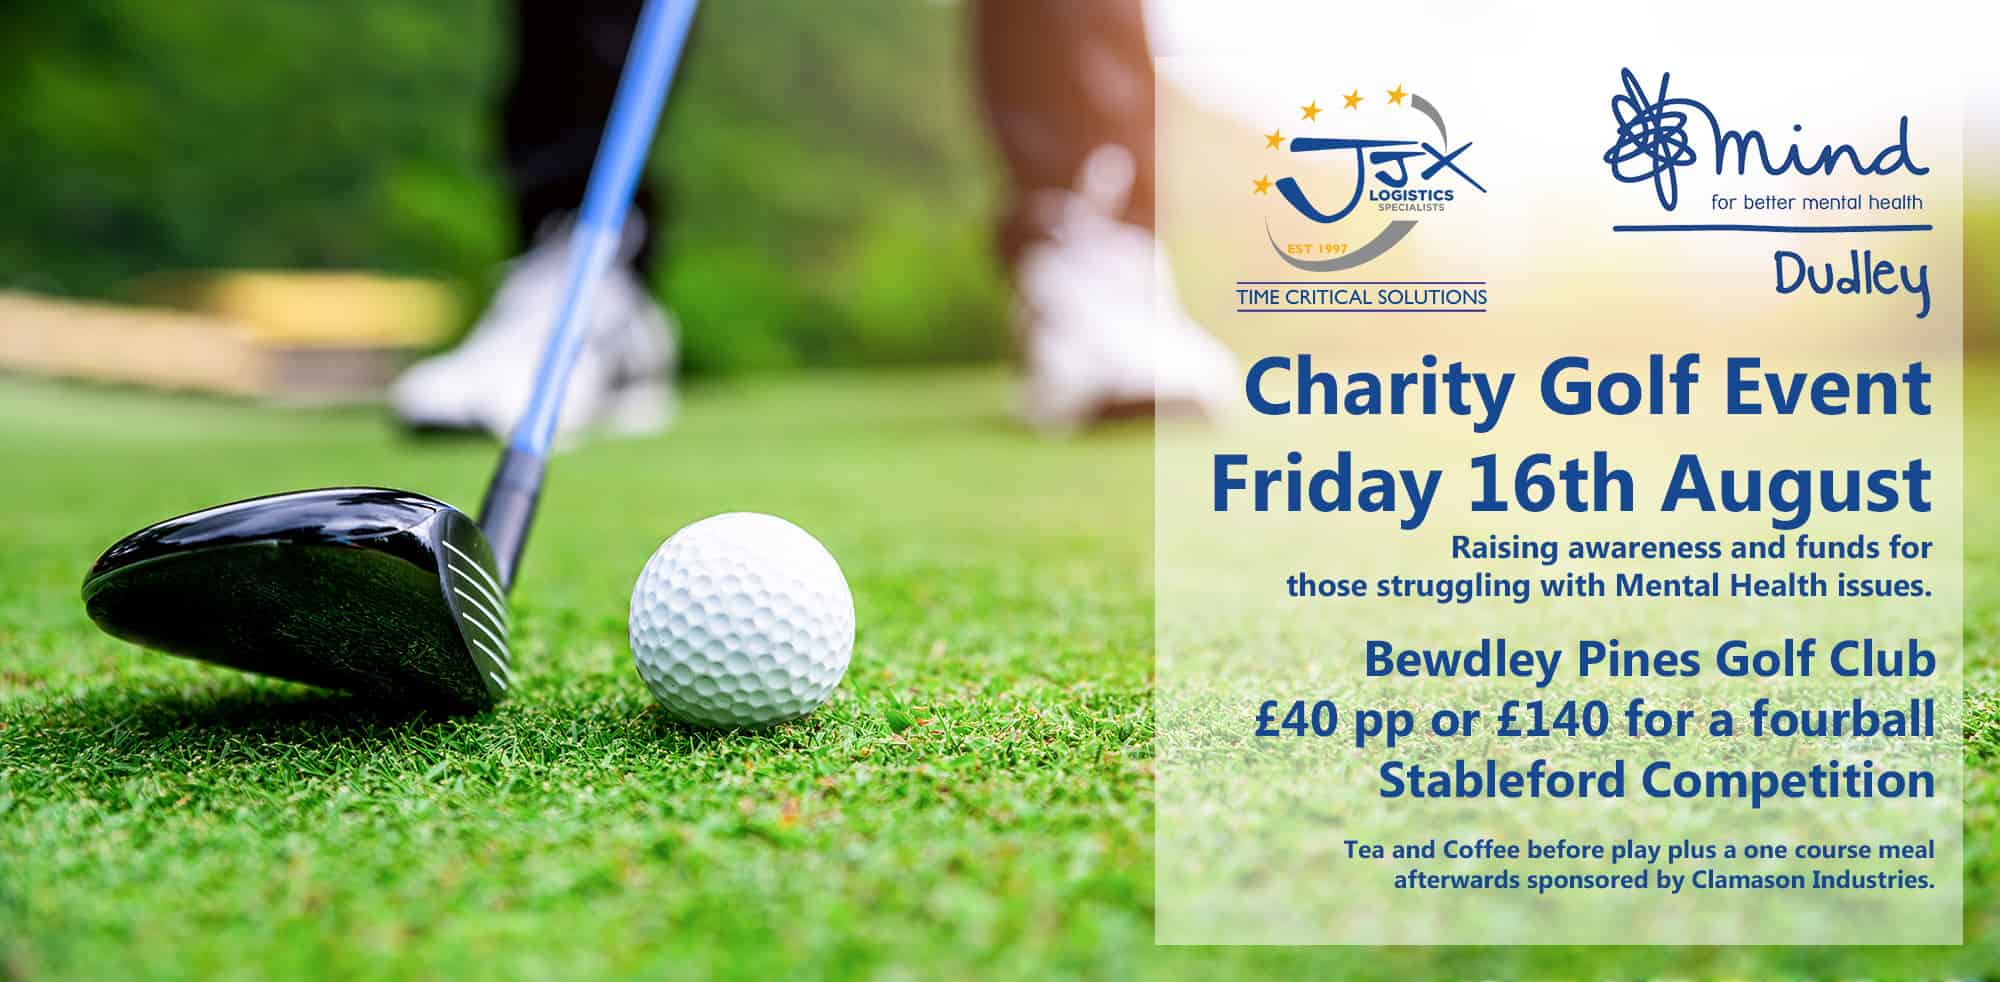 Charity Golf Event in aid of Dudley Mind